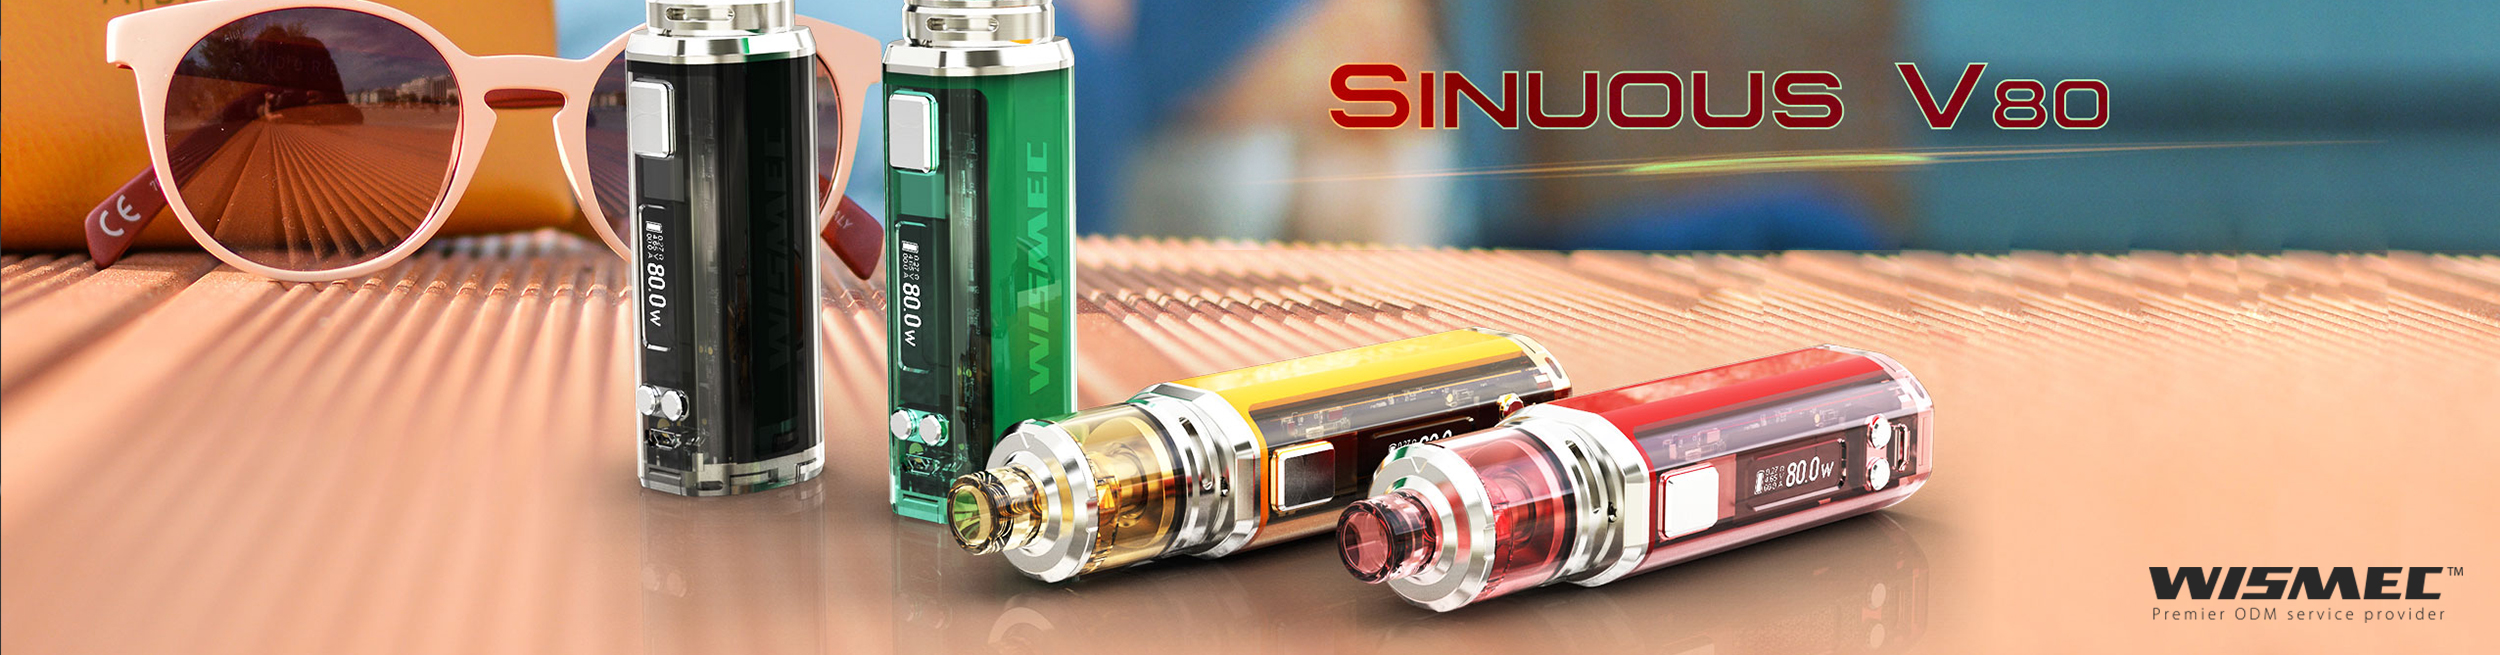 SINUOUS V80 with Amor NSE